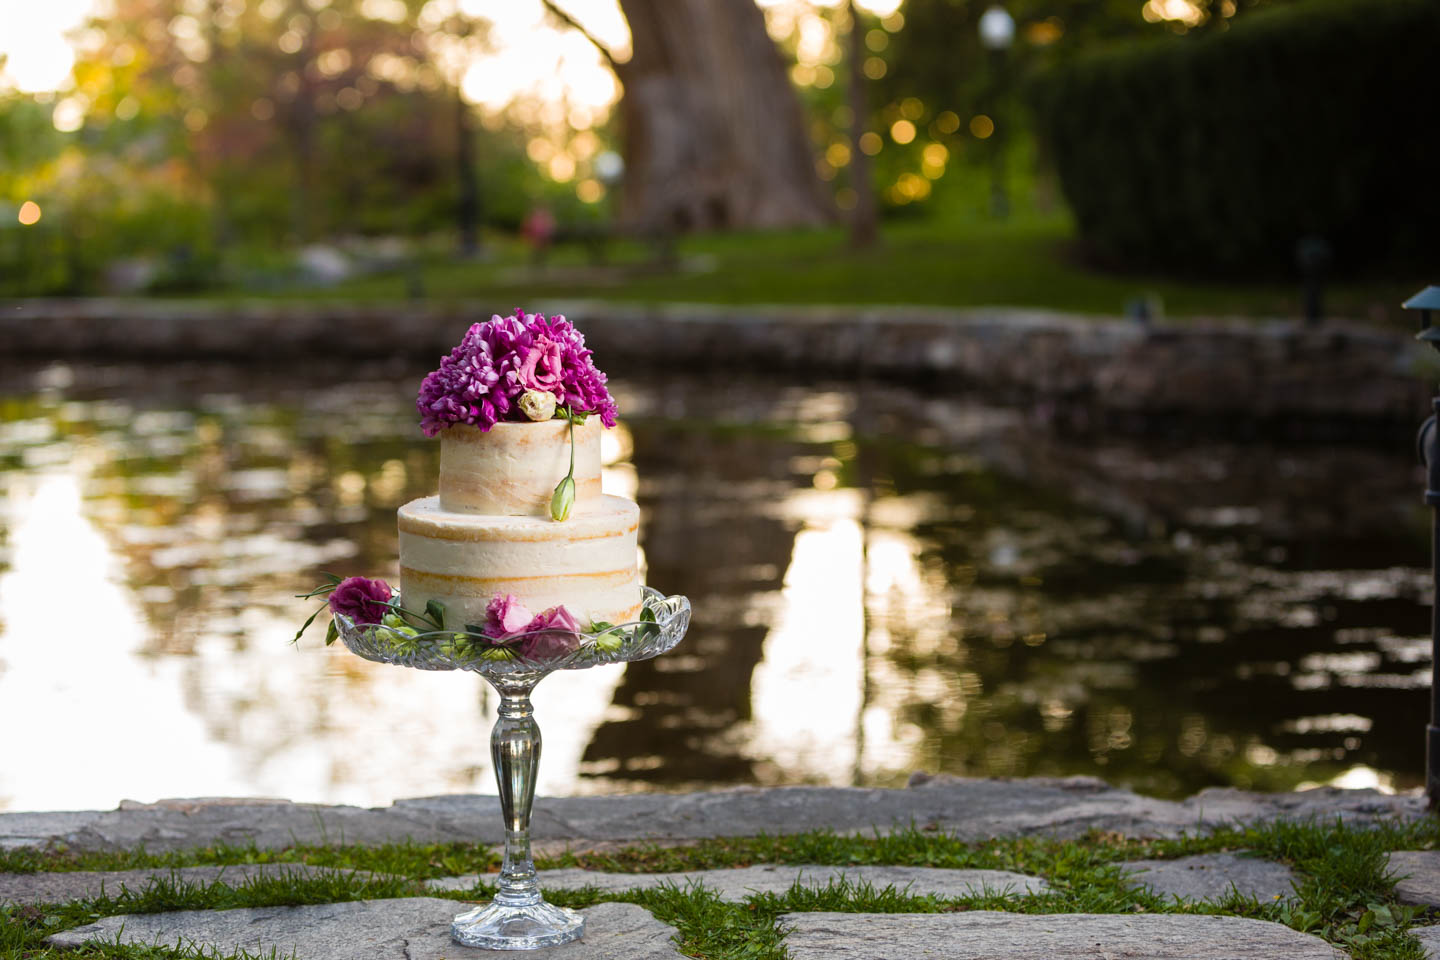 Wedding cake by duck pond